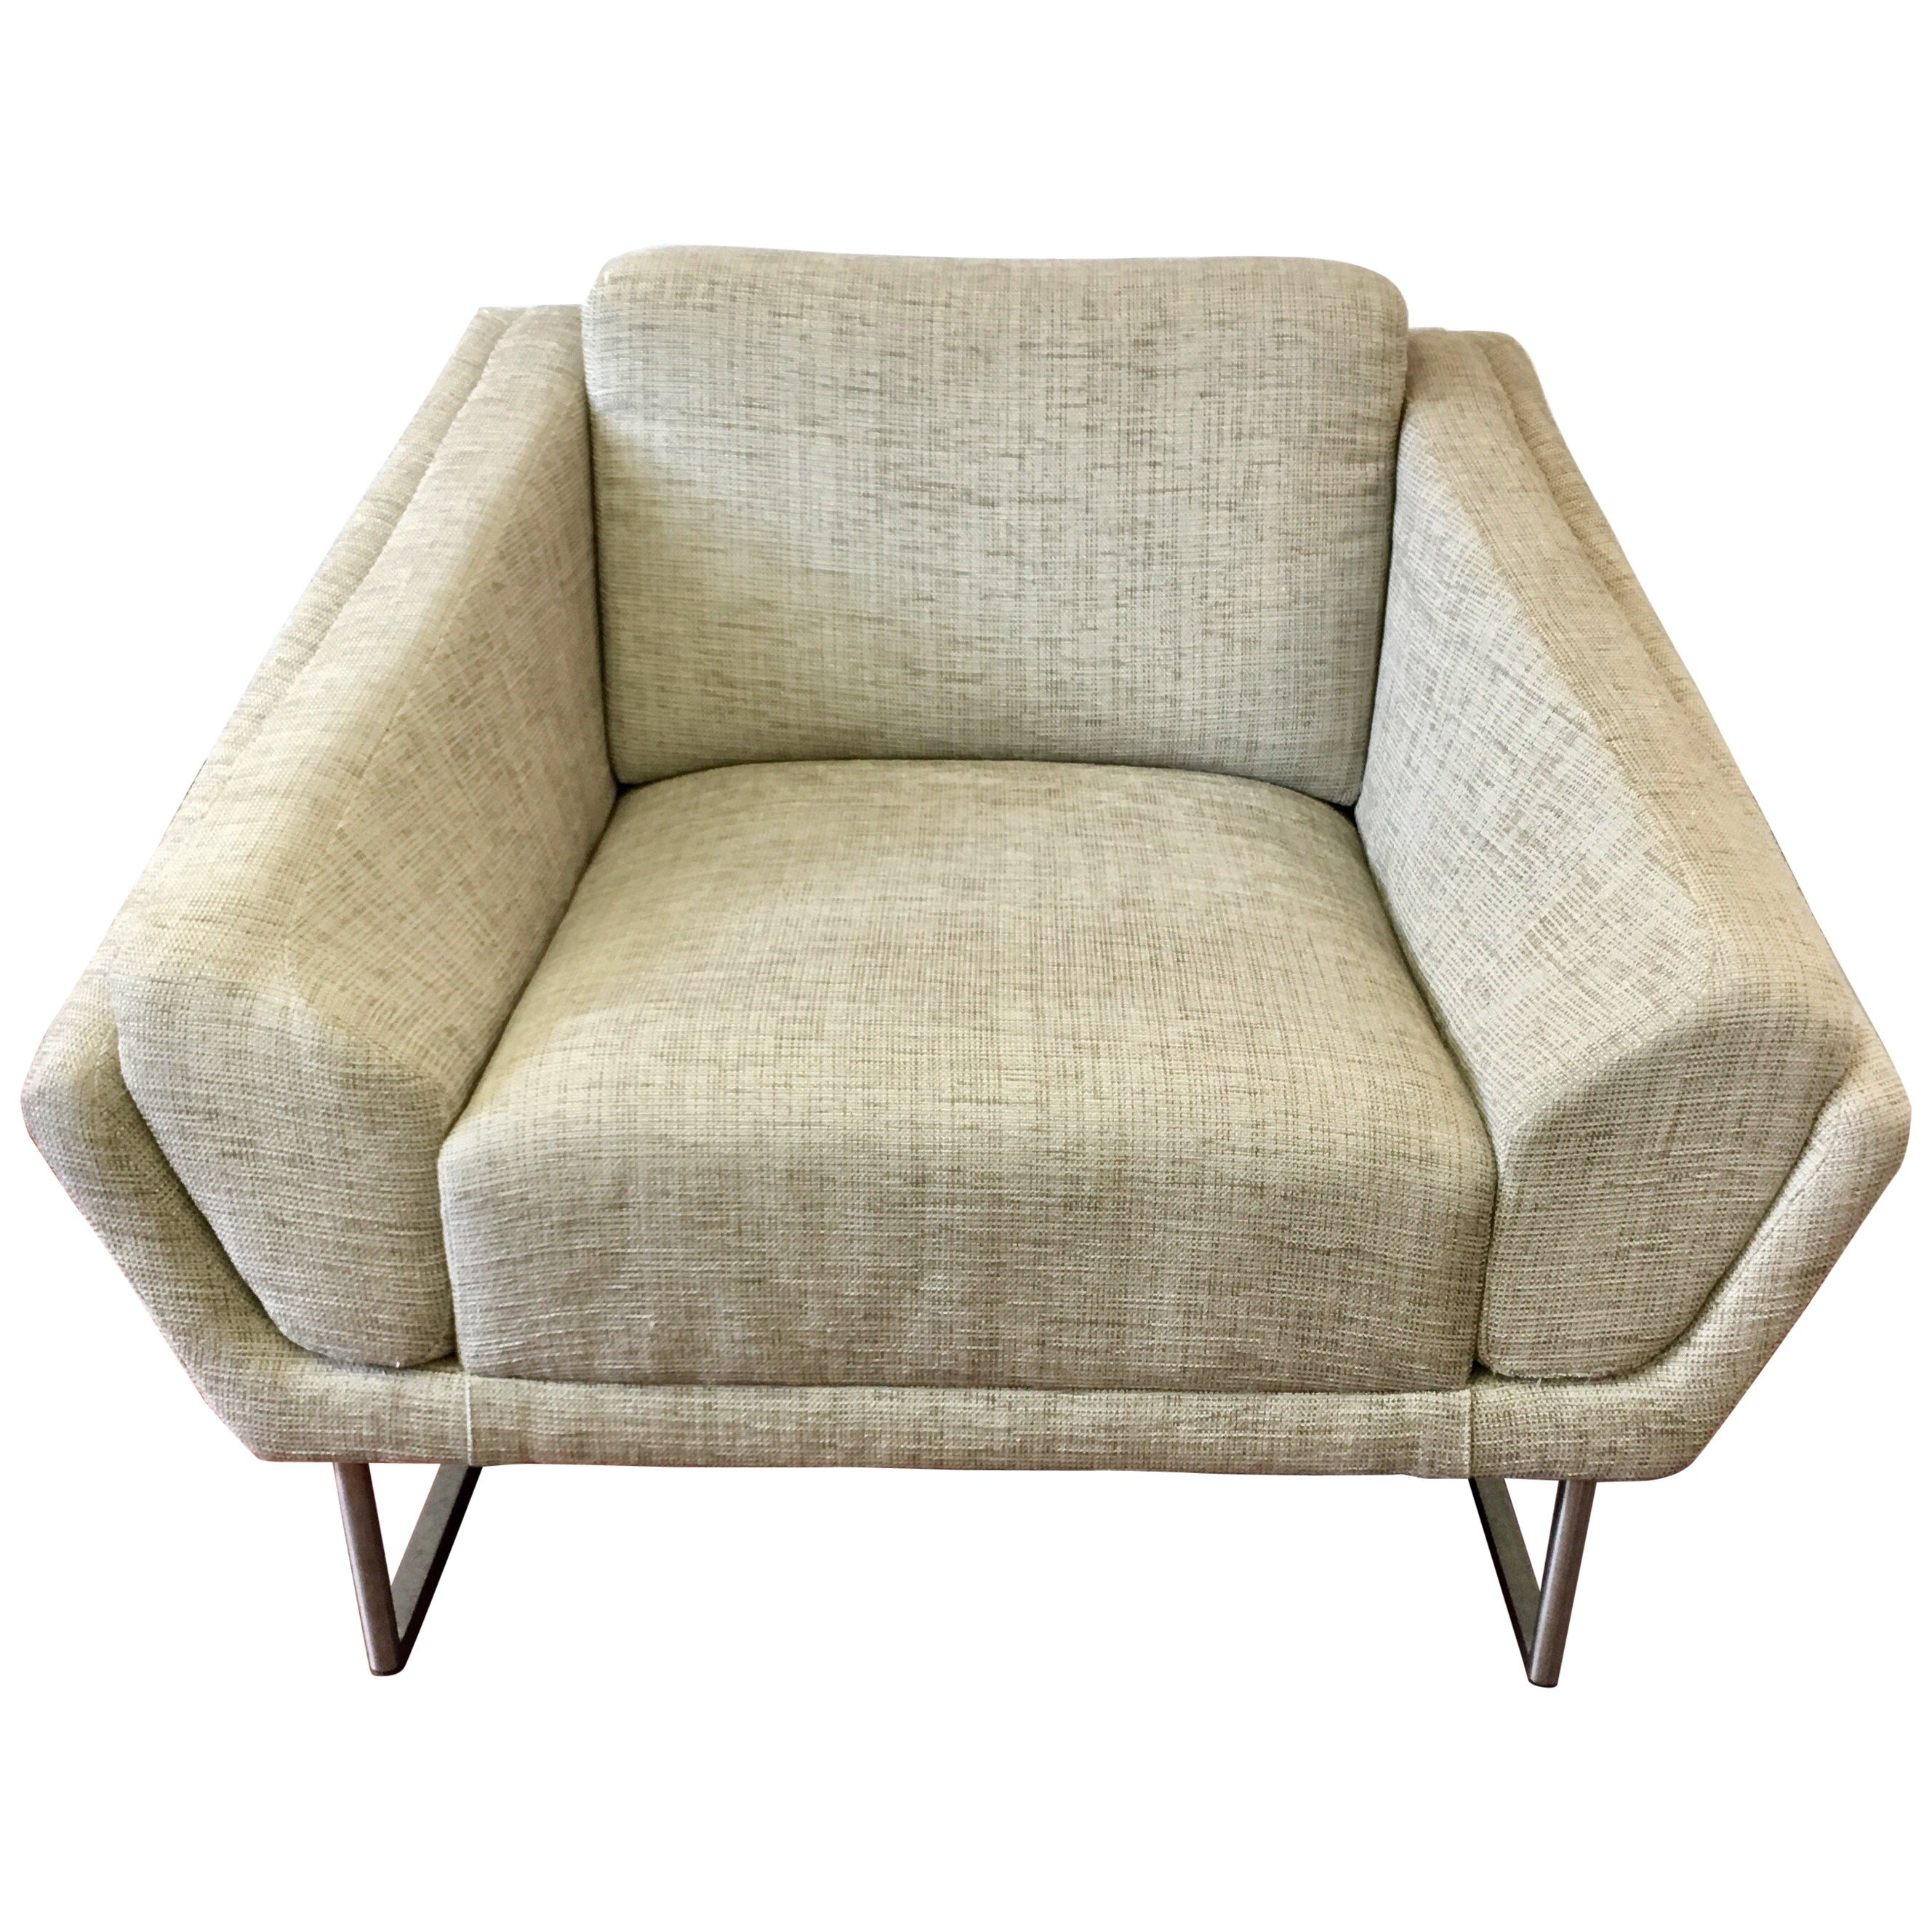 Set of Three HBF Barbara Barry Hickory Architectural Curved Lounge Chairs